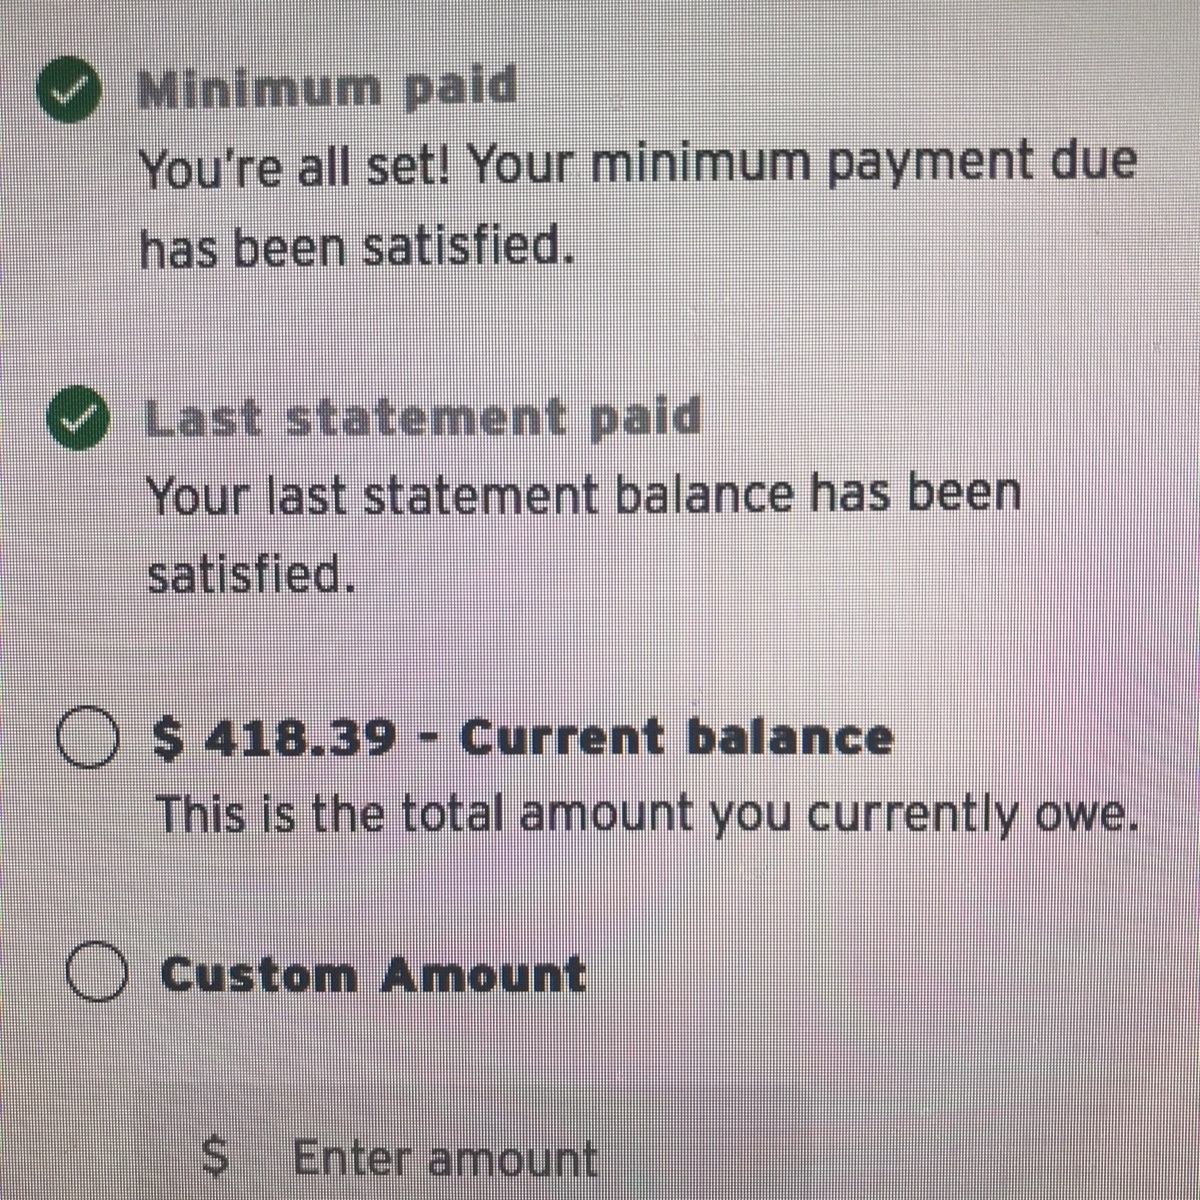 If you need to make any other additional charges on the card, but do not have the budget to pay more than what your current statement balance is, then wait until after the closing date.